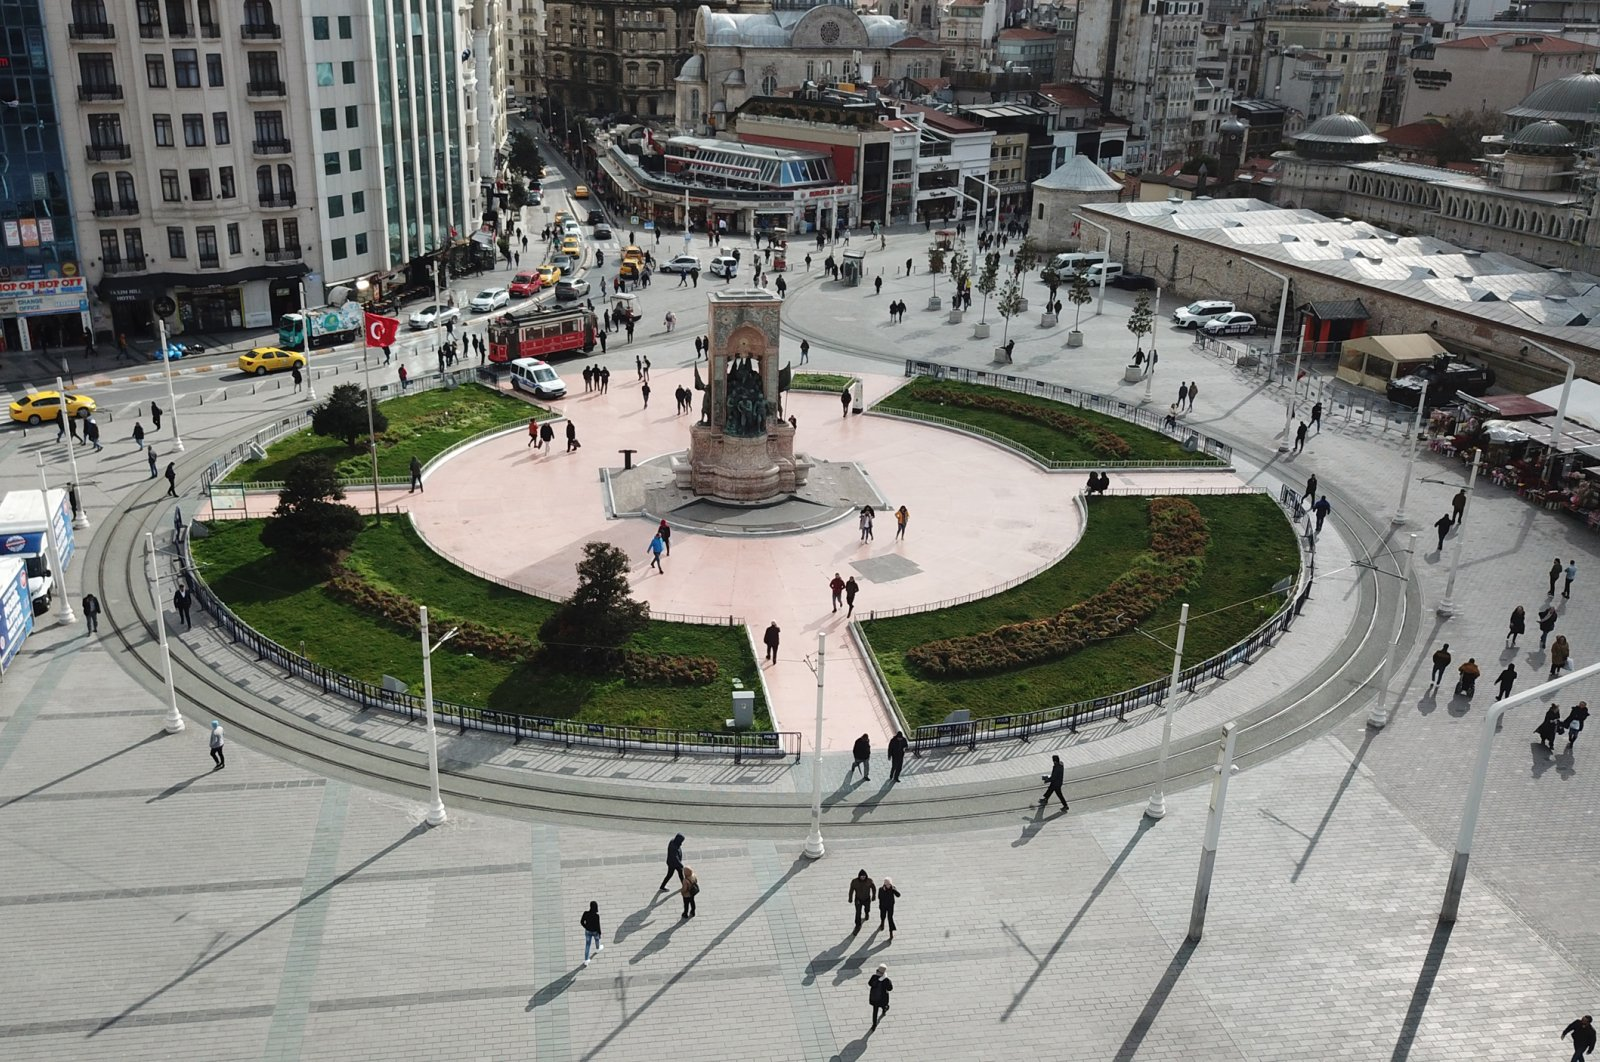 People walk at Taksim Square, Monday, March 16, 2020, Istanbul. The square was one of the busiest places in the city before the virus scare emerged. (DHA Photo)